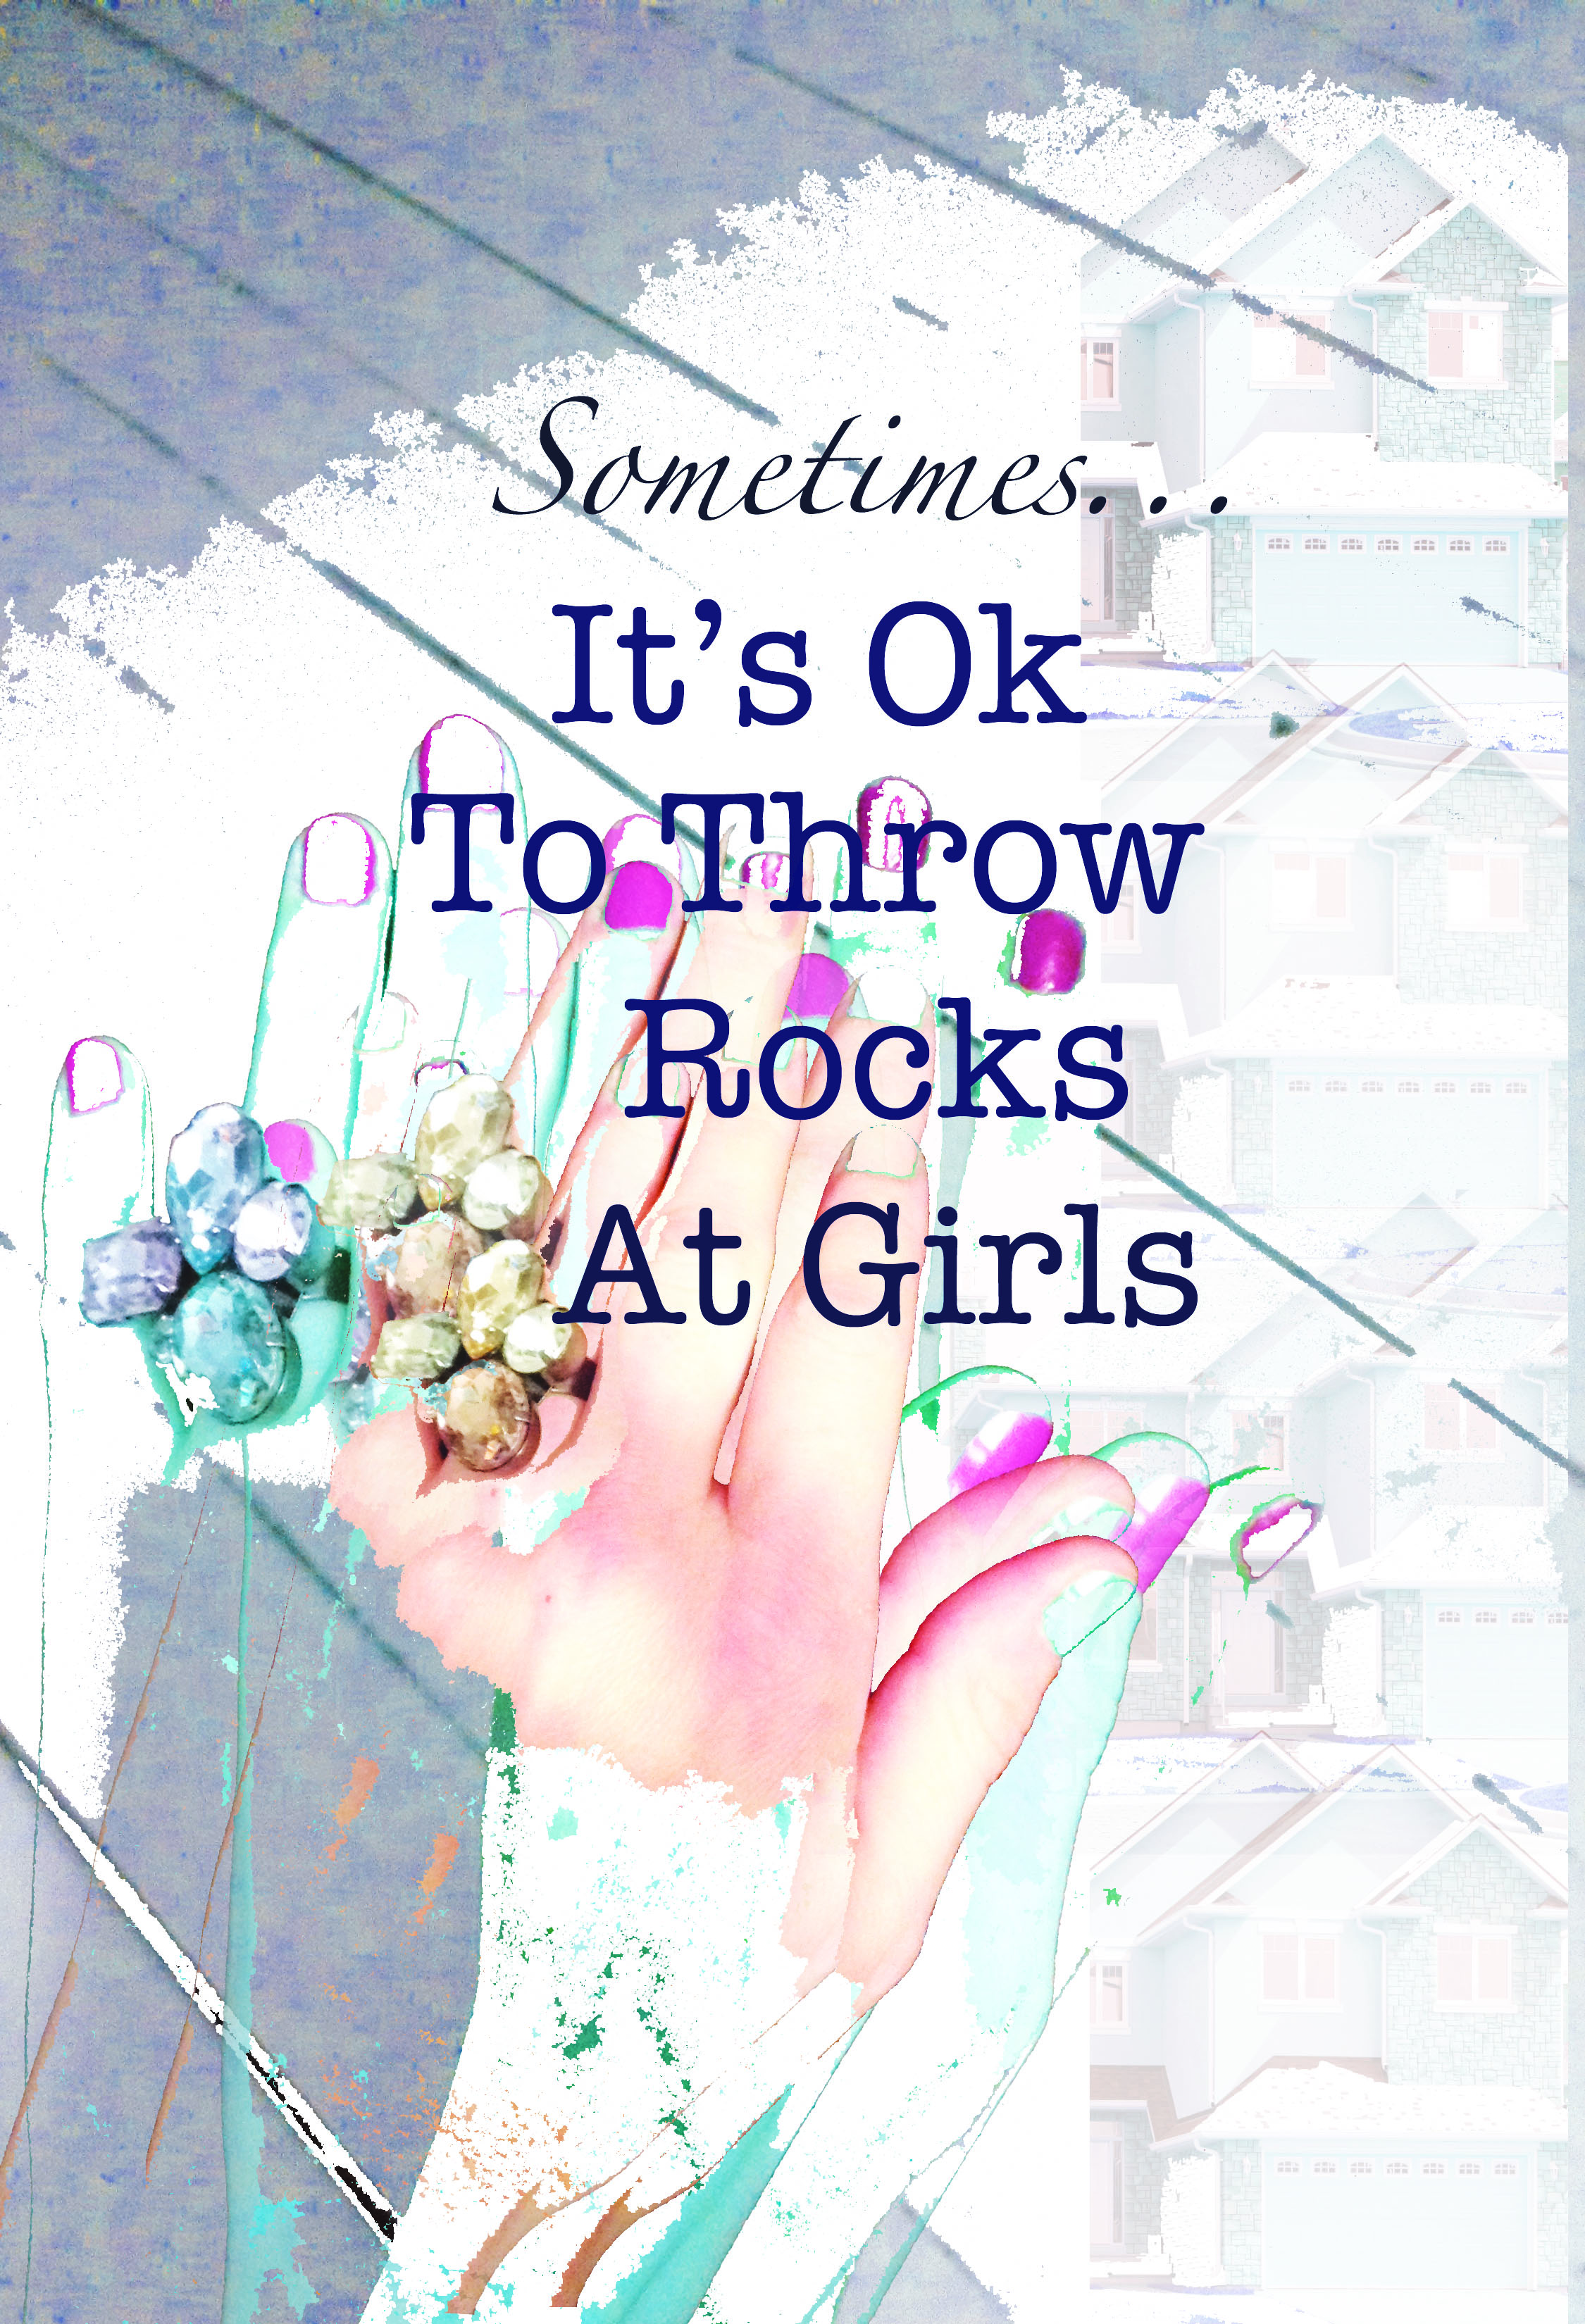 It's Ok To Throw Rocks at Girls